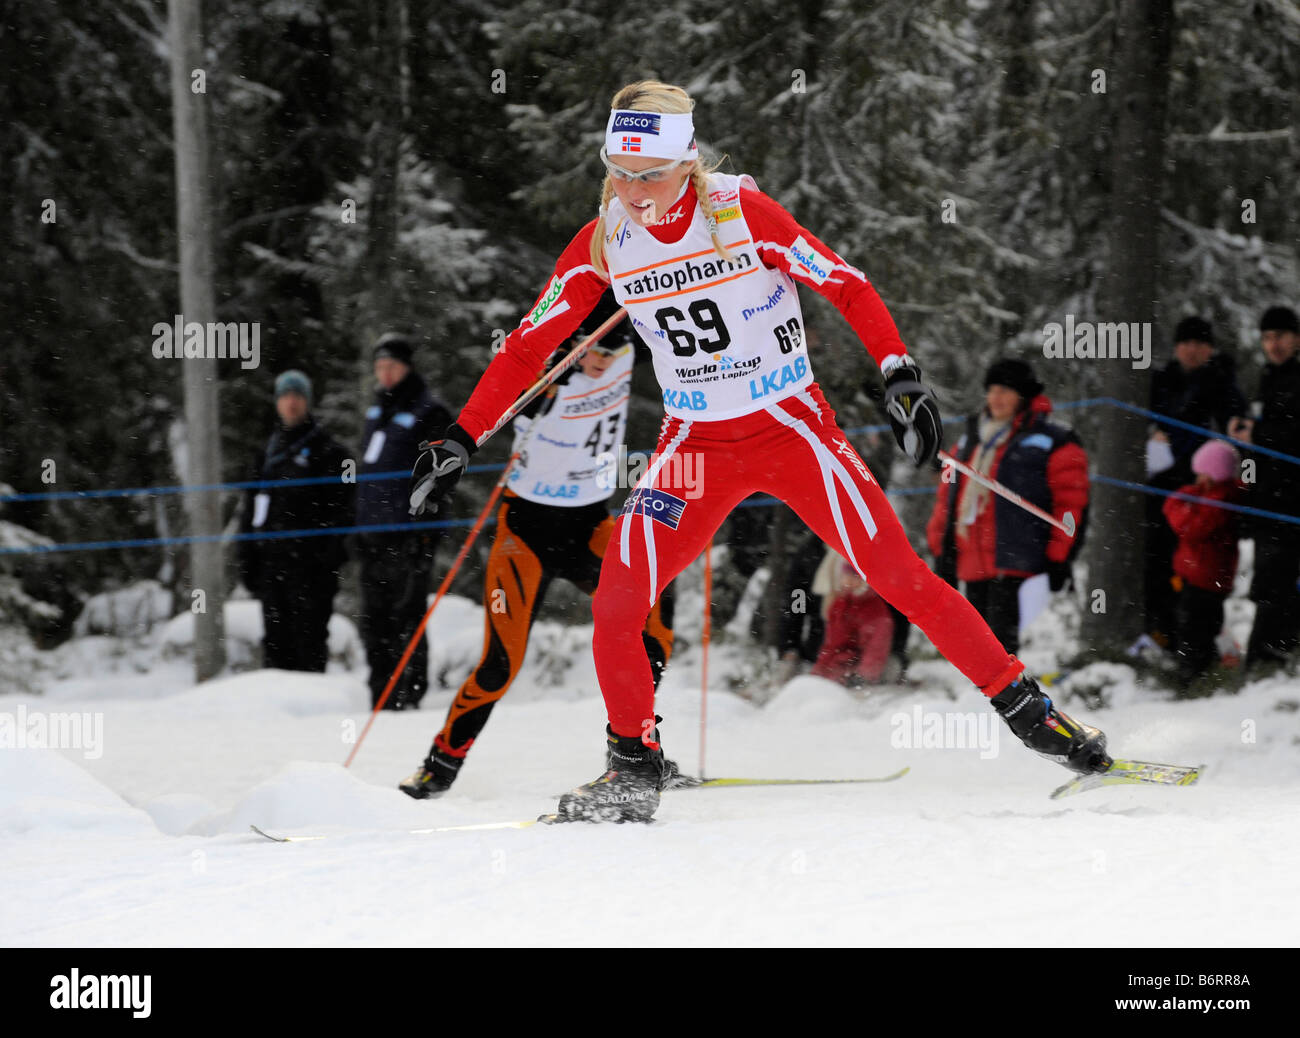 Therese Johaug Norge. The world cup competitions in Gällivare, Sweden 2008 11 22 - Stock Image